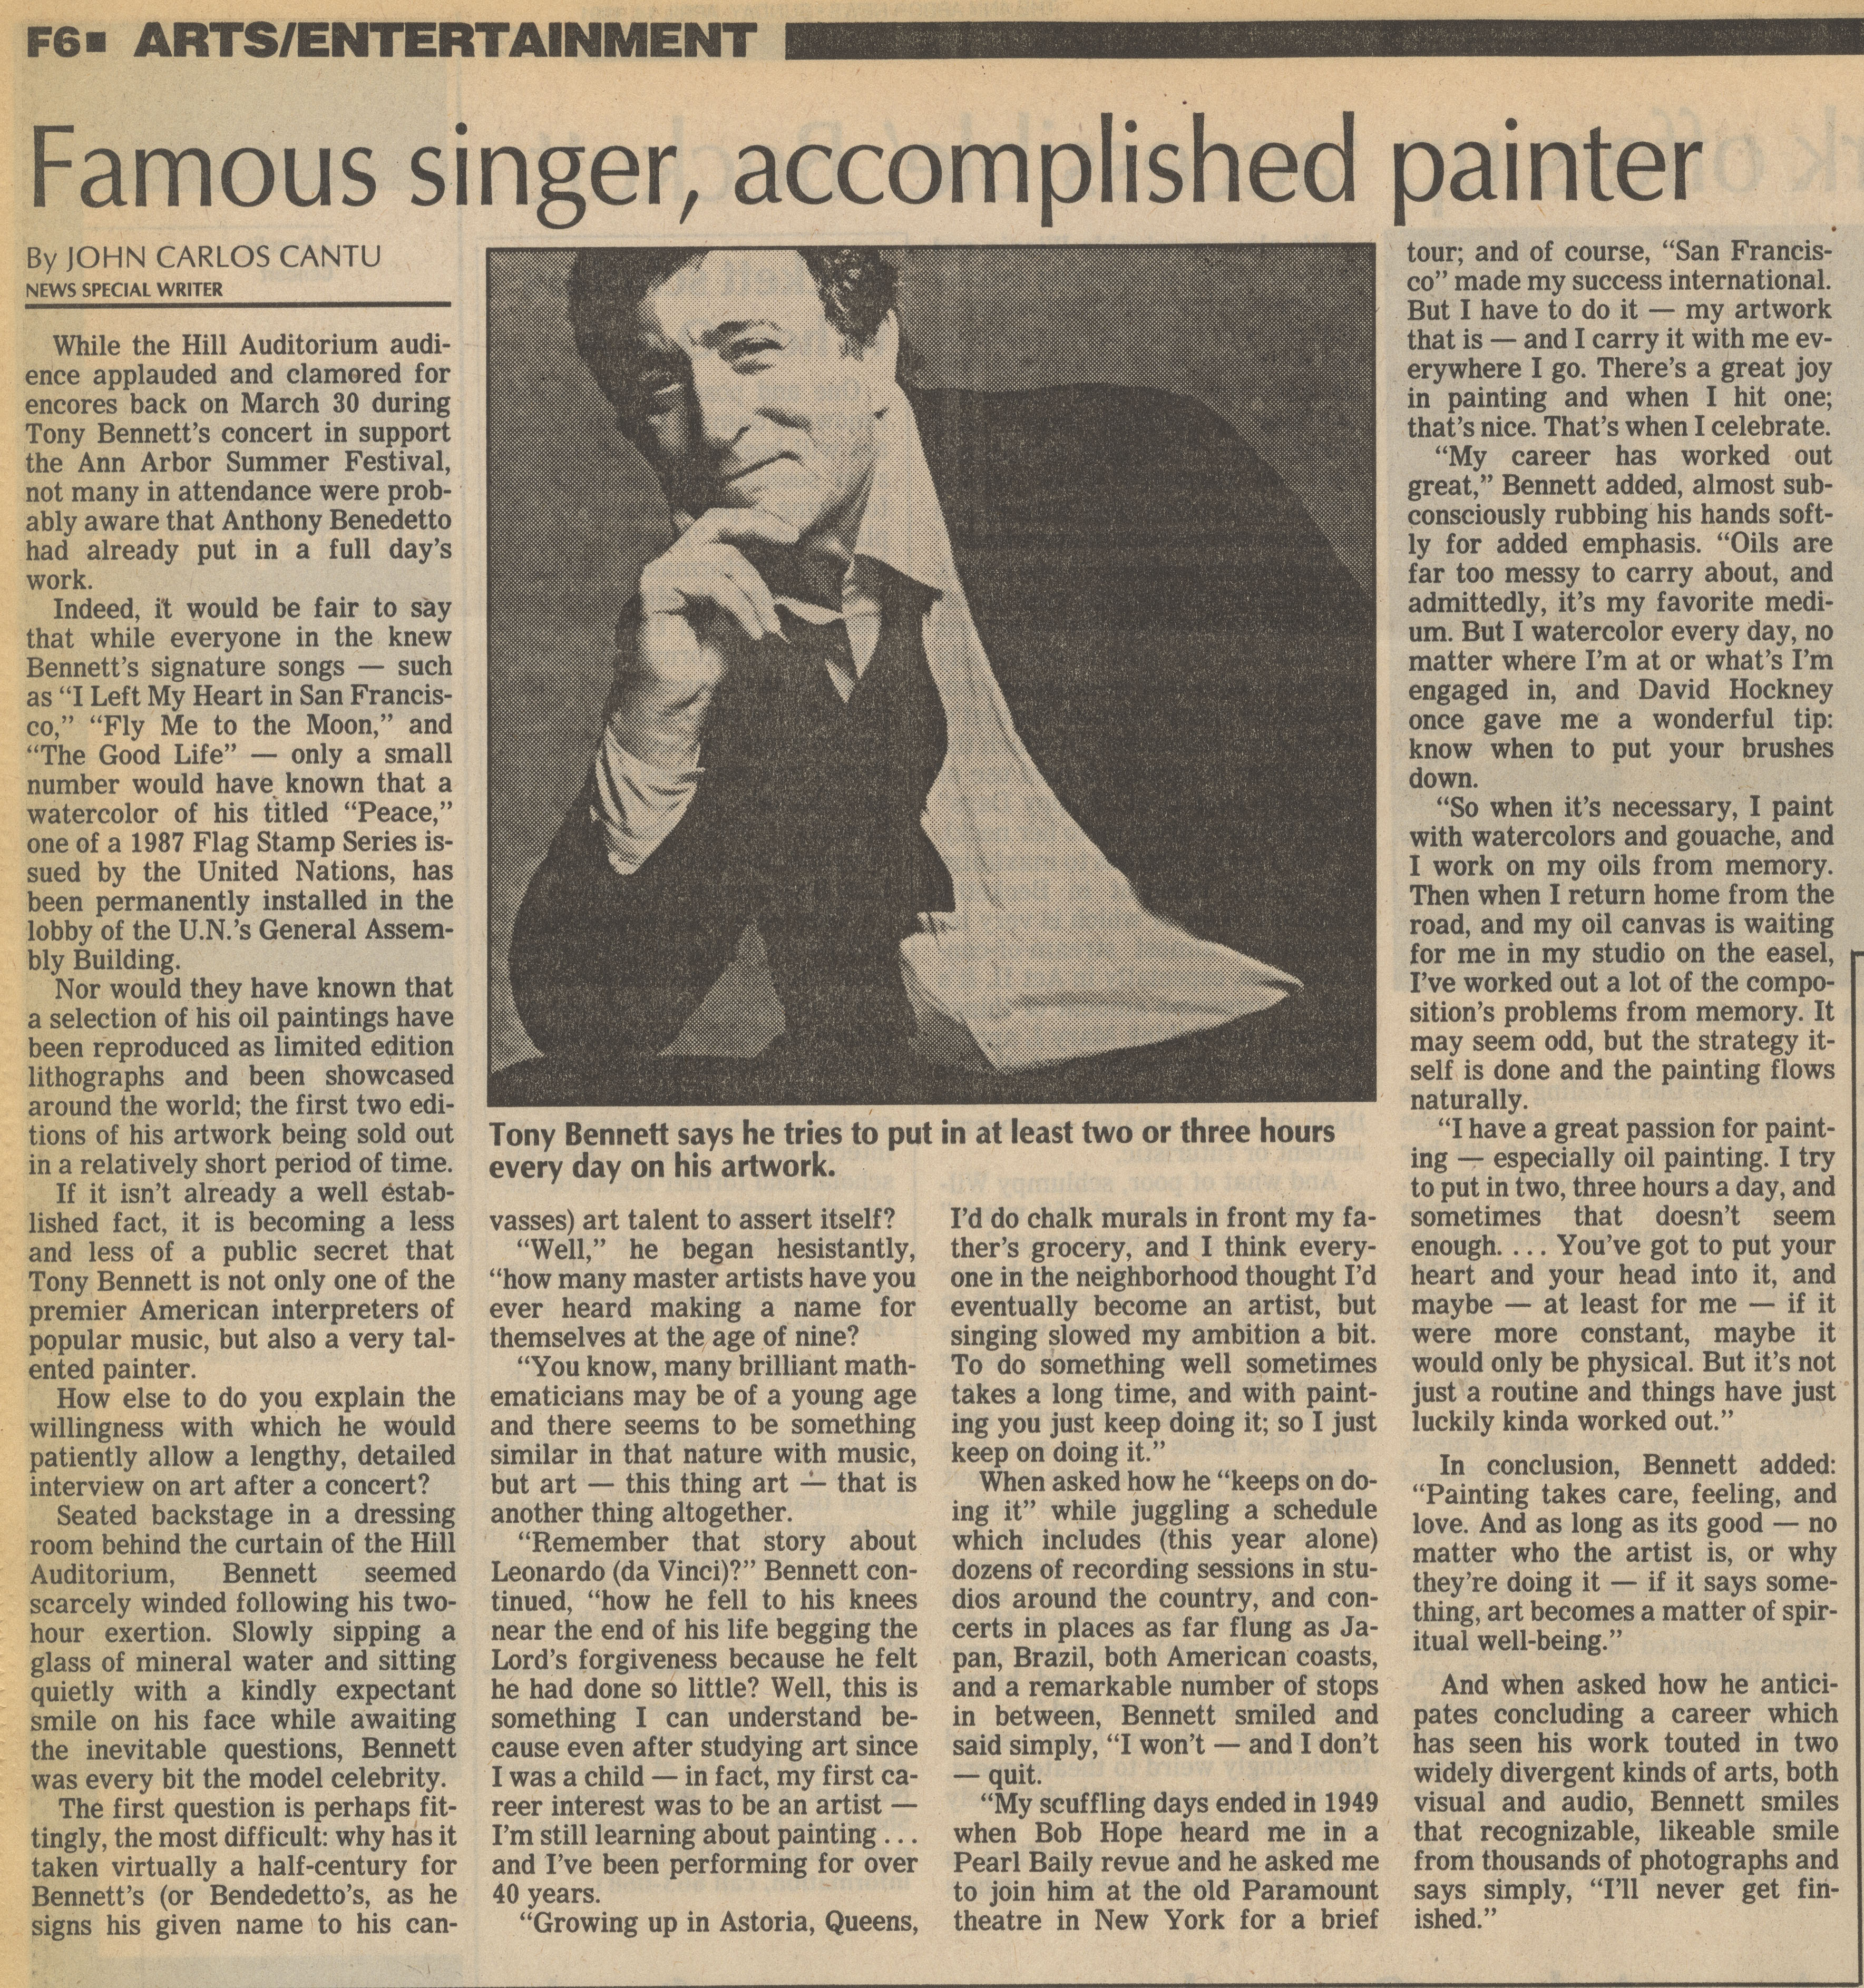 Famouse singer, accomplished painter image